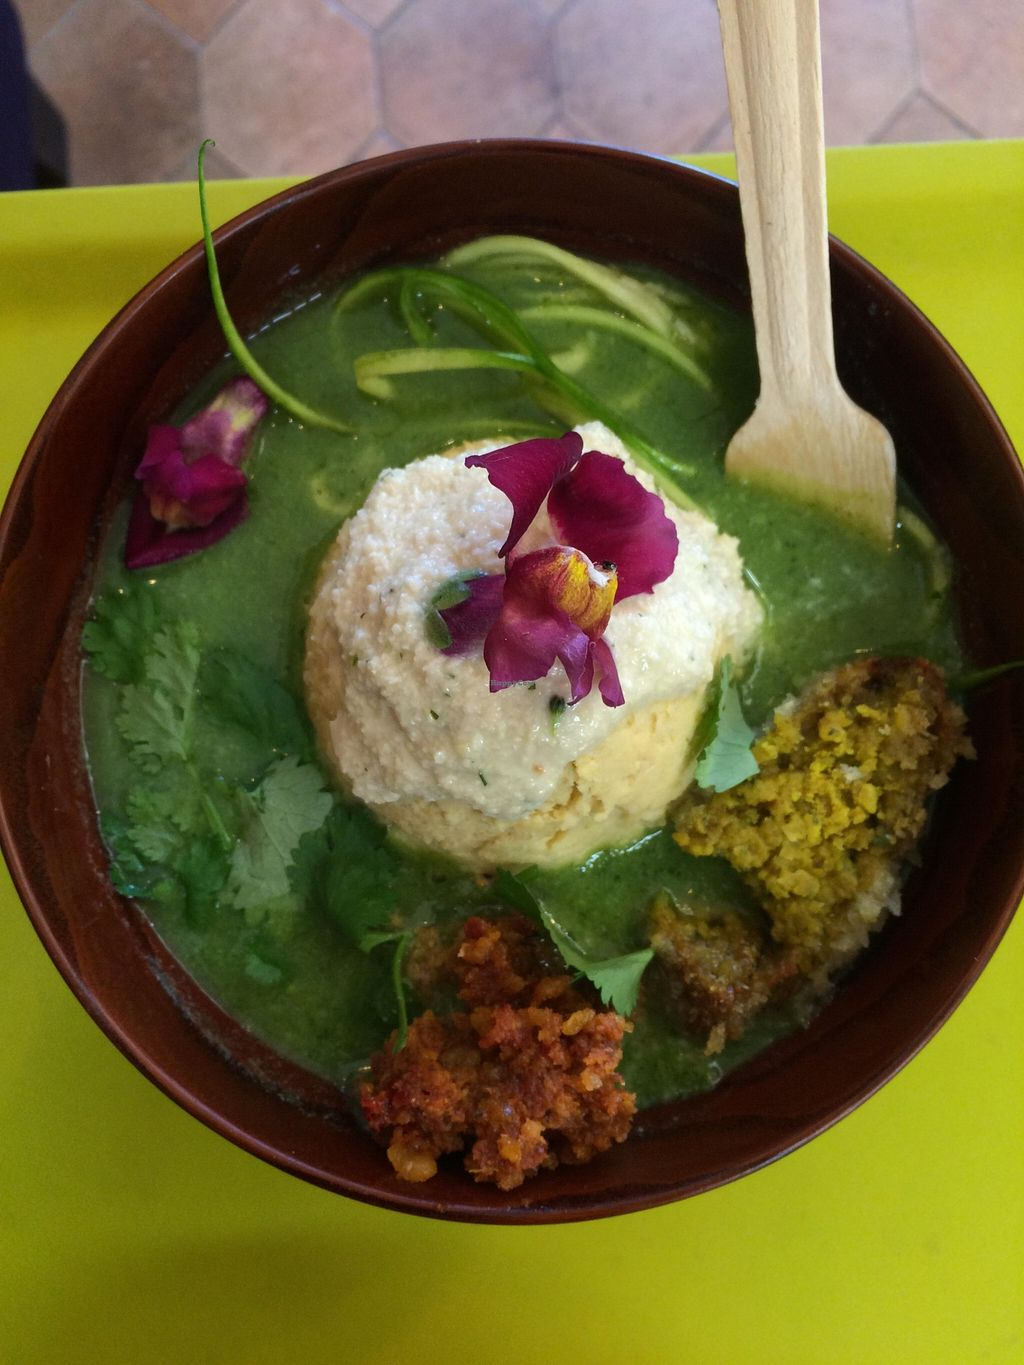 """Photo of CLOSED: Sattbar - 사뜨바  by <a href=""""/members/profile/michellekim"""">michellekim</a> <br/>One of the newest additions to the menu. Noodles made of squash and no flour was used in this meal.  <br/> January 31, 2016  - <a href='/contact/abuse/image/66958/134326'>Report</a>"""